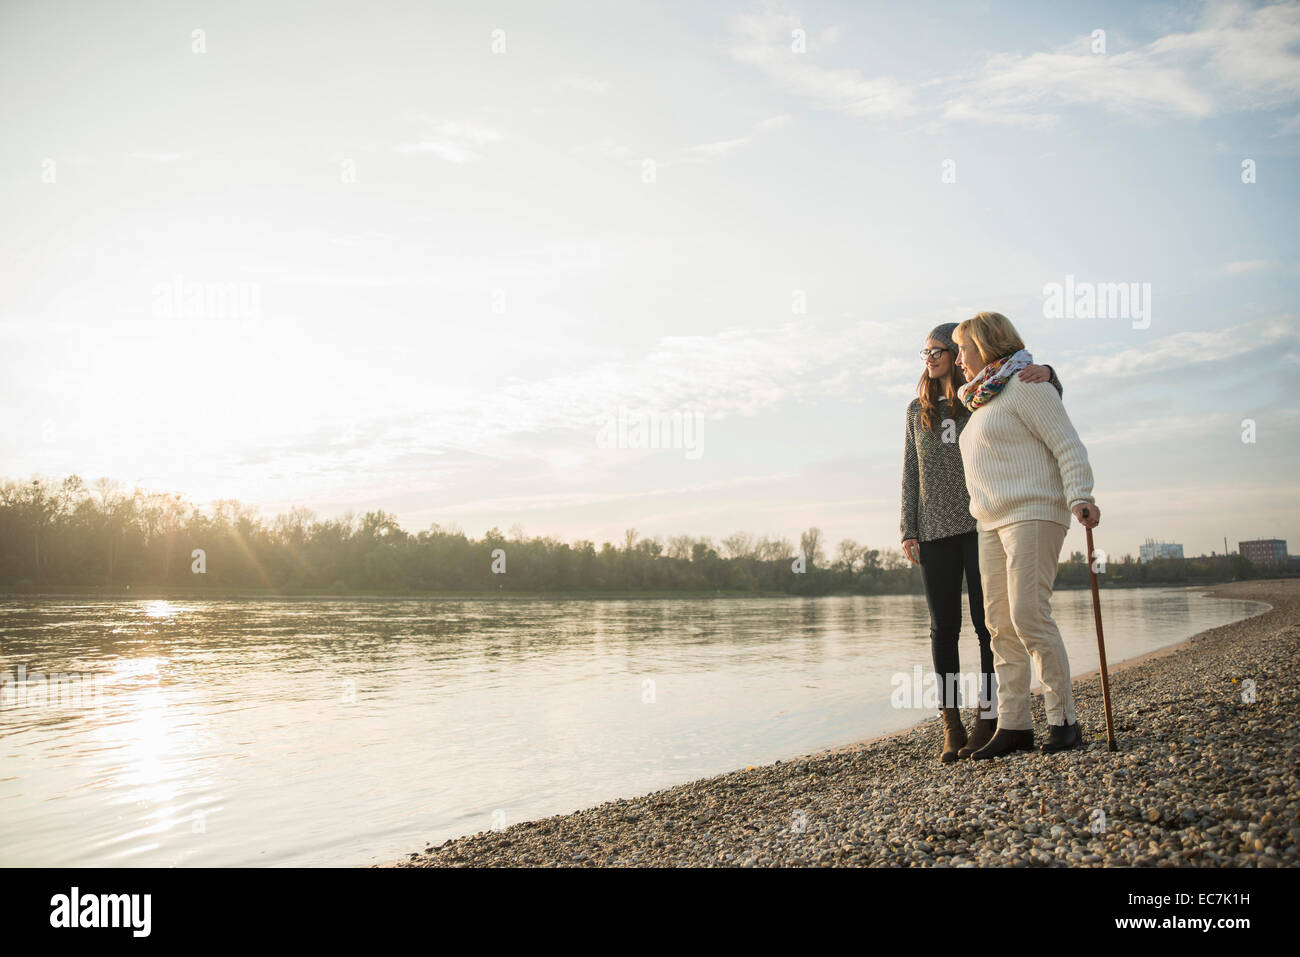 Young woman and her grandmother standing together at water watching sunset - Stock Image